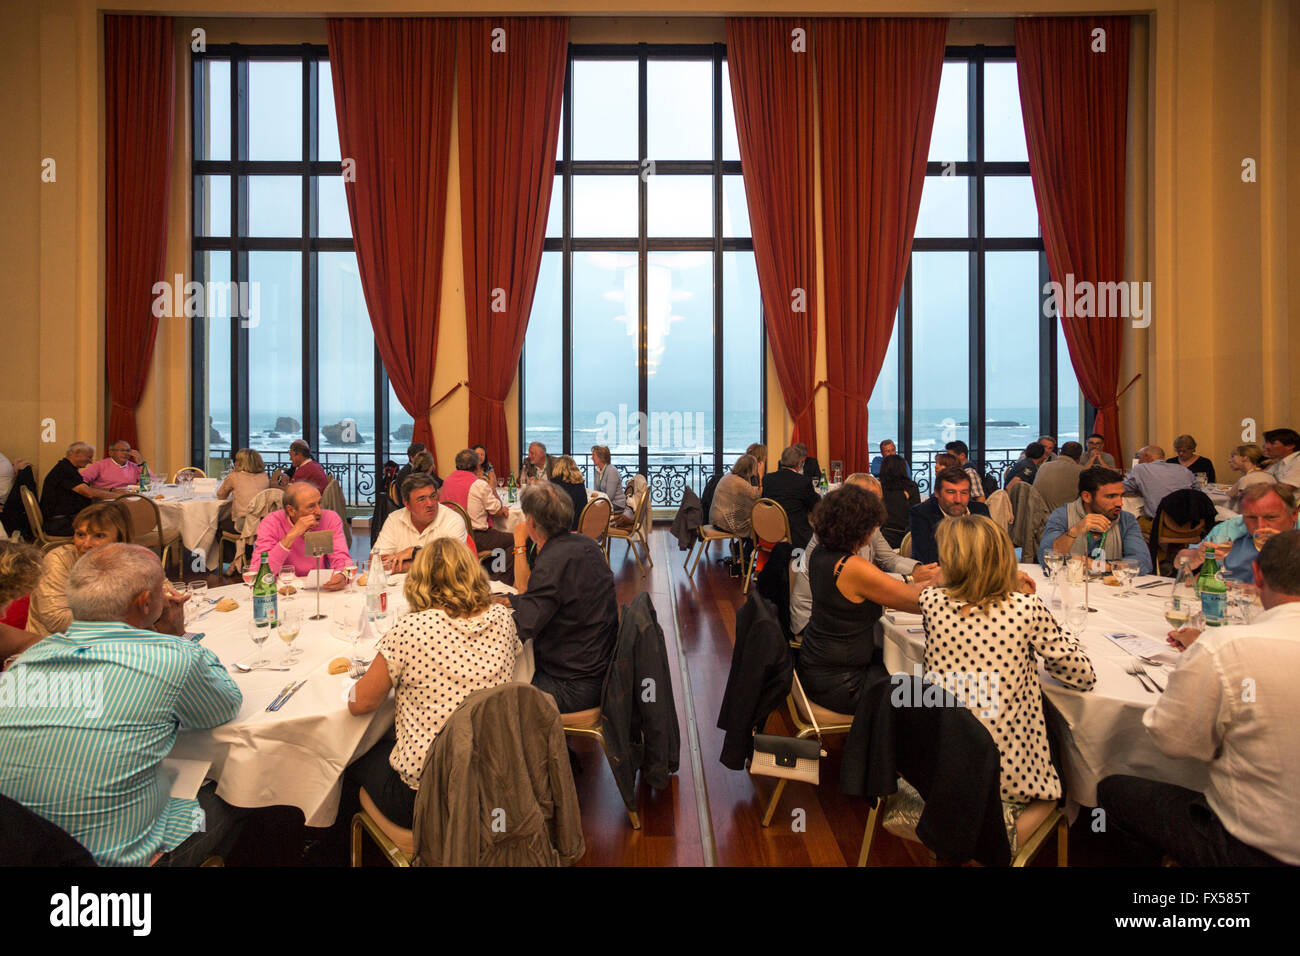 A reception in the ambassador function room of the Biarritz municipal casino (France). Picture windows which open - Stock Image